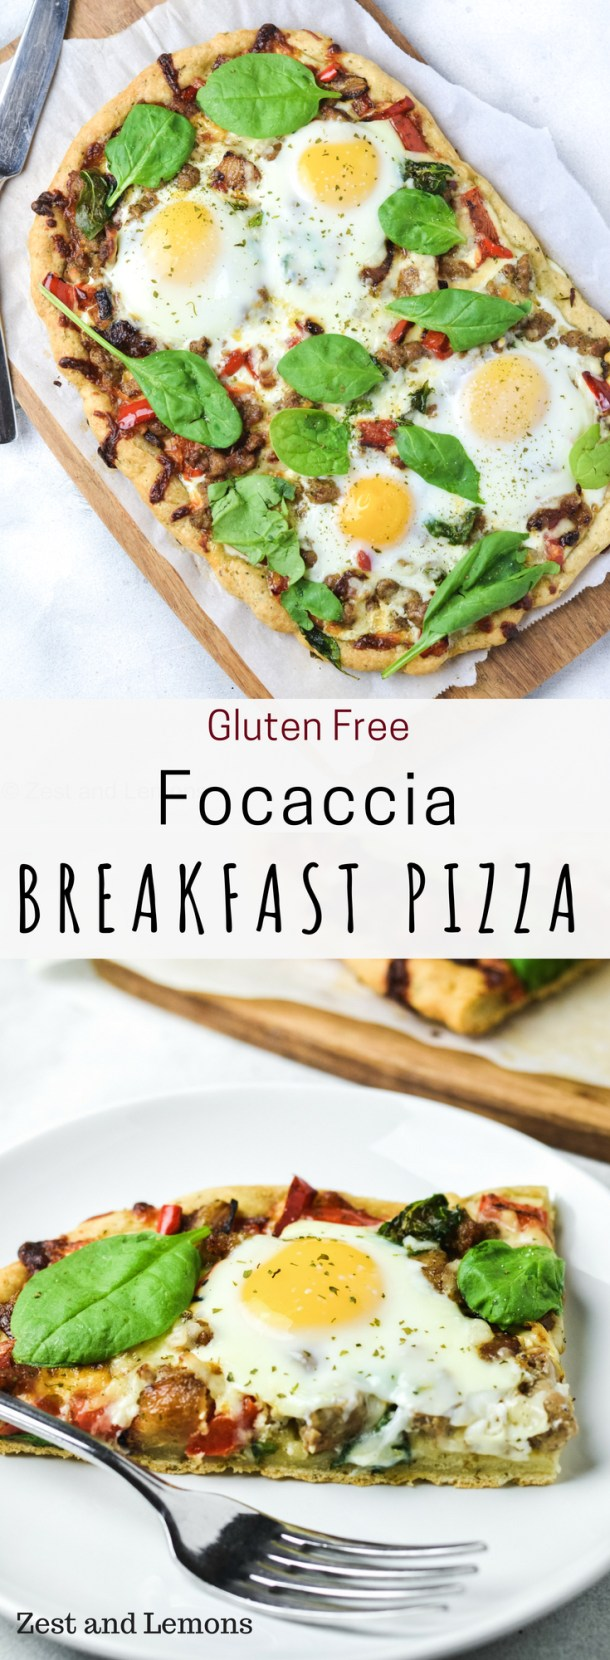 Gluten Free Focaccia Breakfast Pizza. Perfect for a hearty breakfast or brunch! - Zest and Lemons #glutenfreebreakfast #breakfast #breakfastpizza